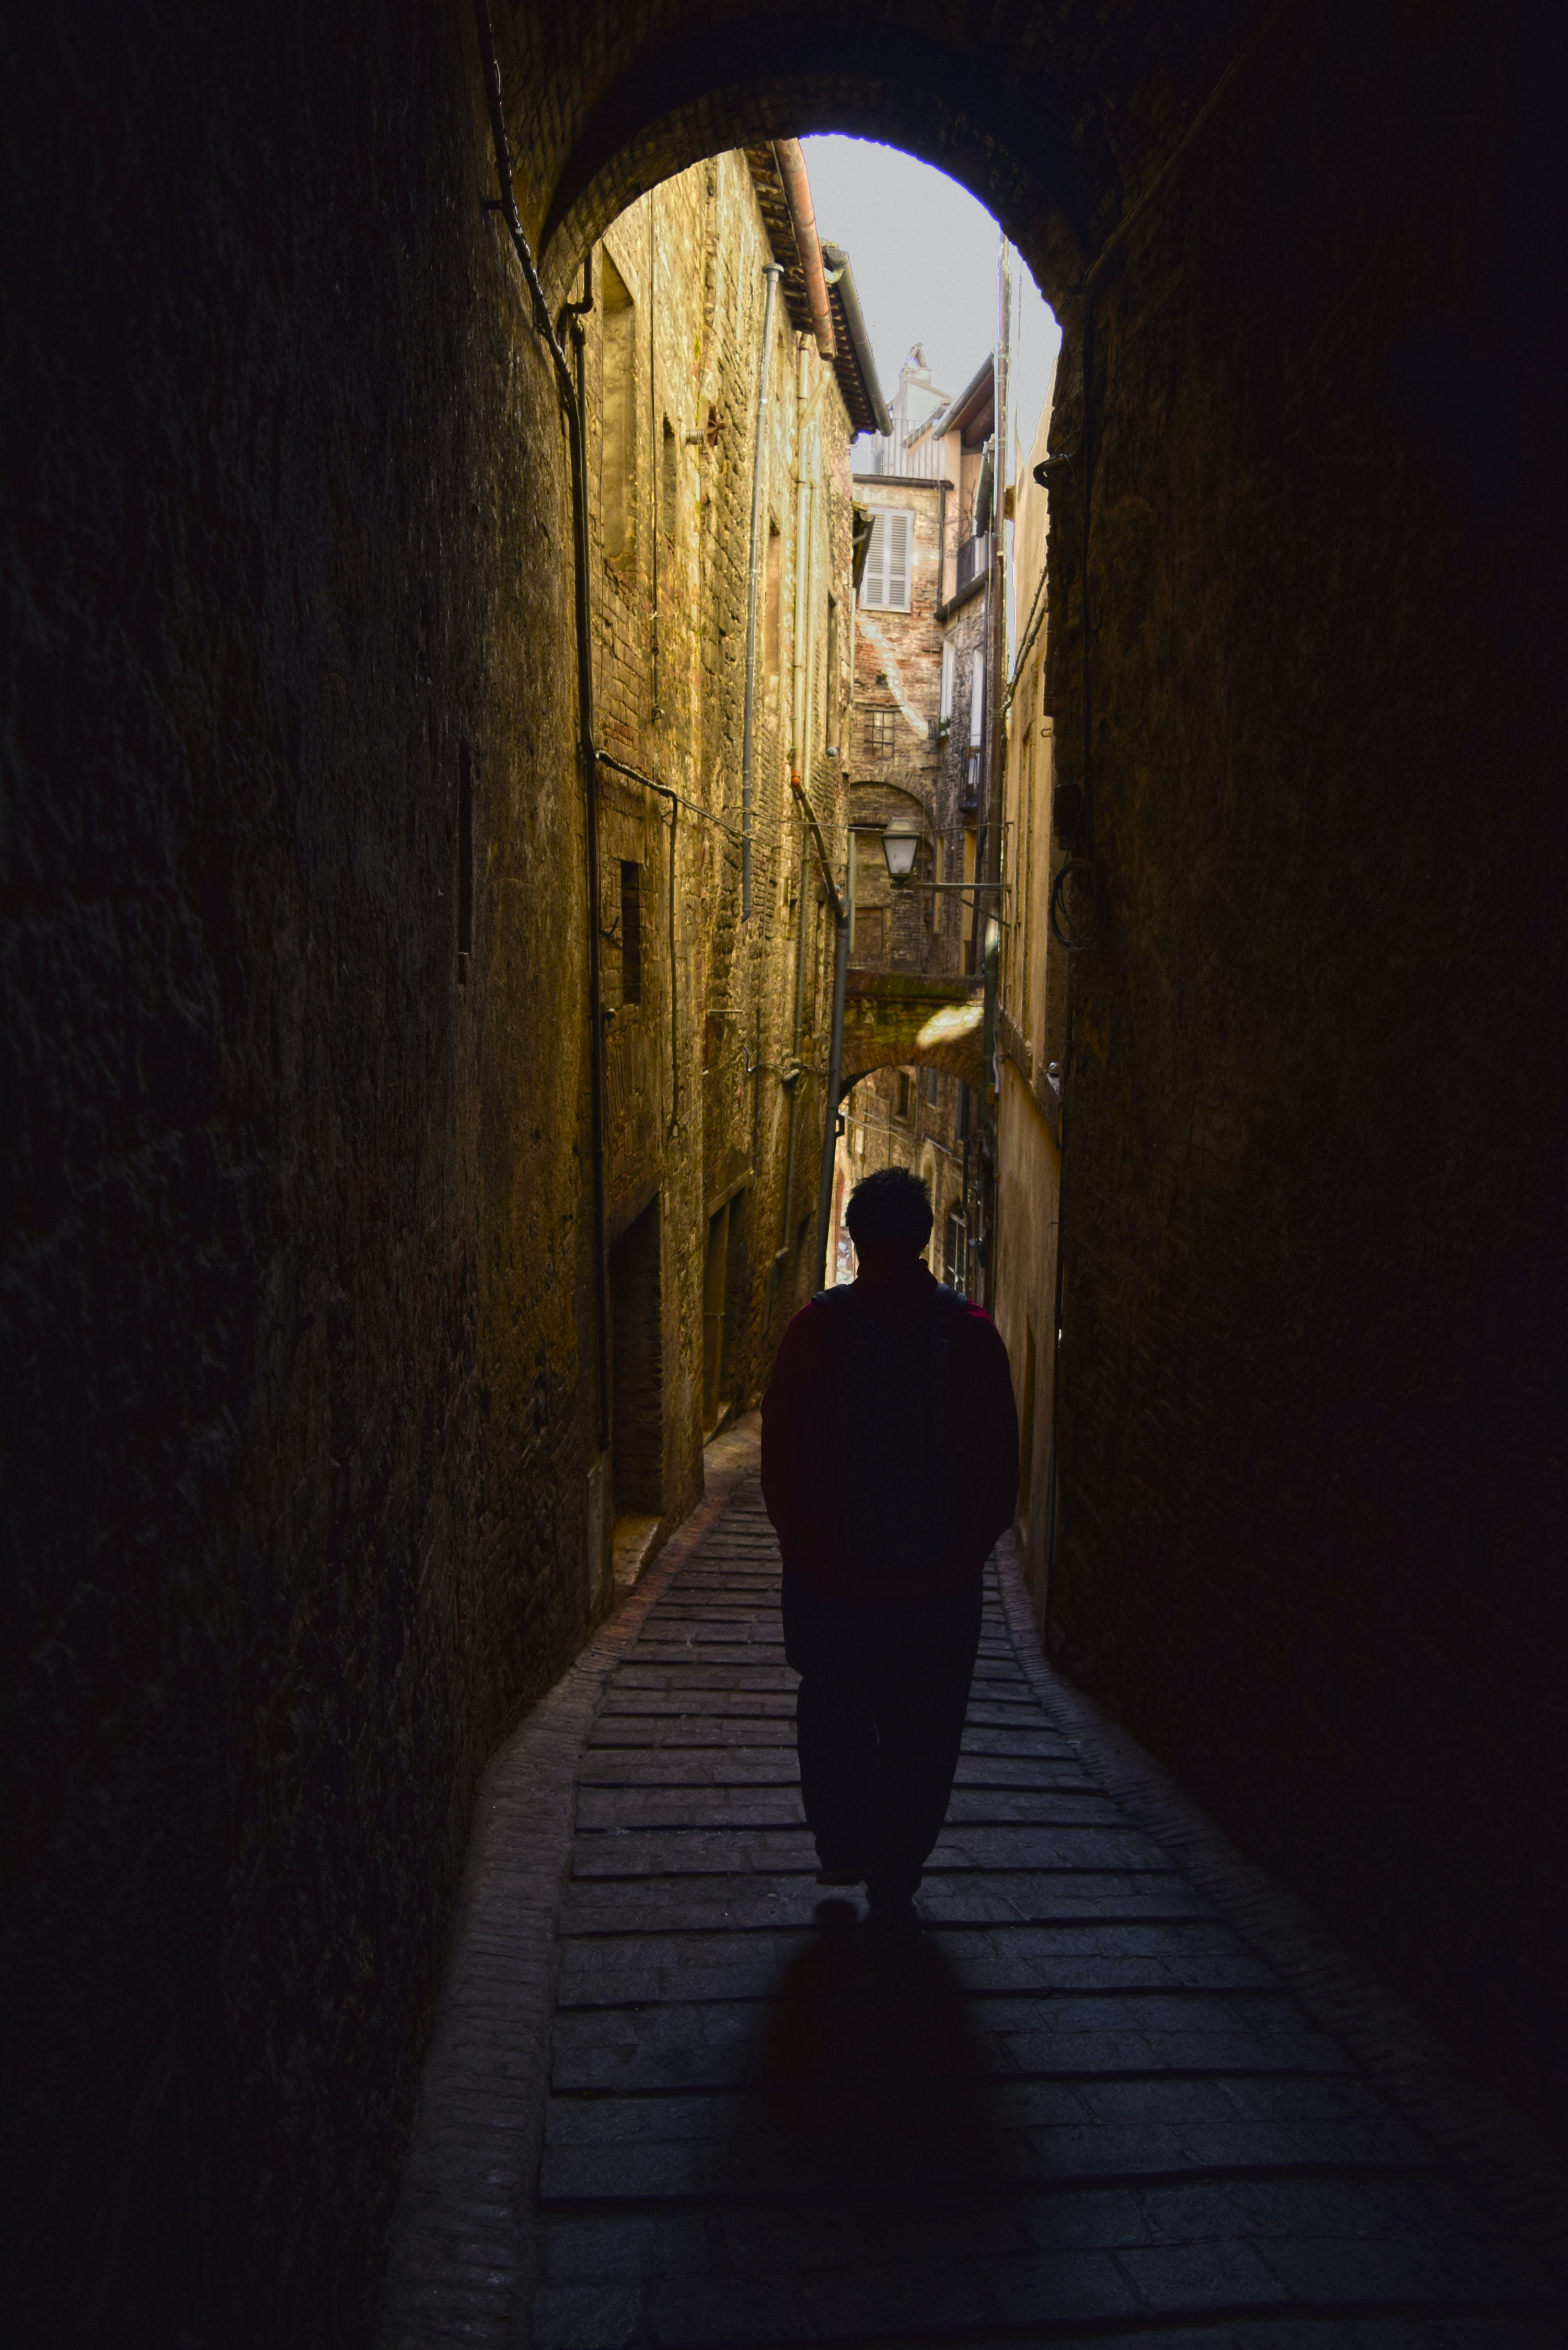 Free stock photo of adventure, alone, downhill, downstairs